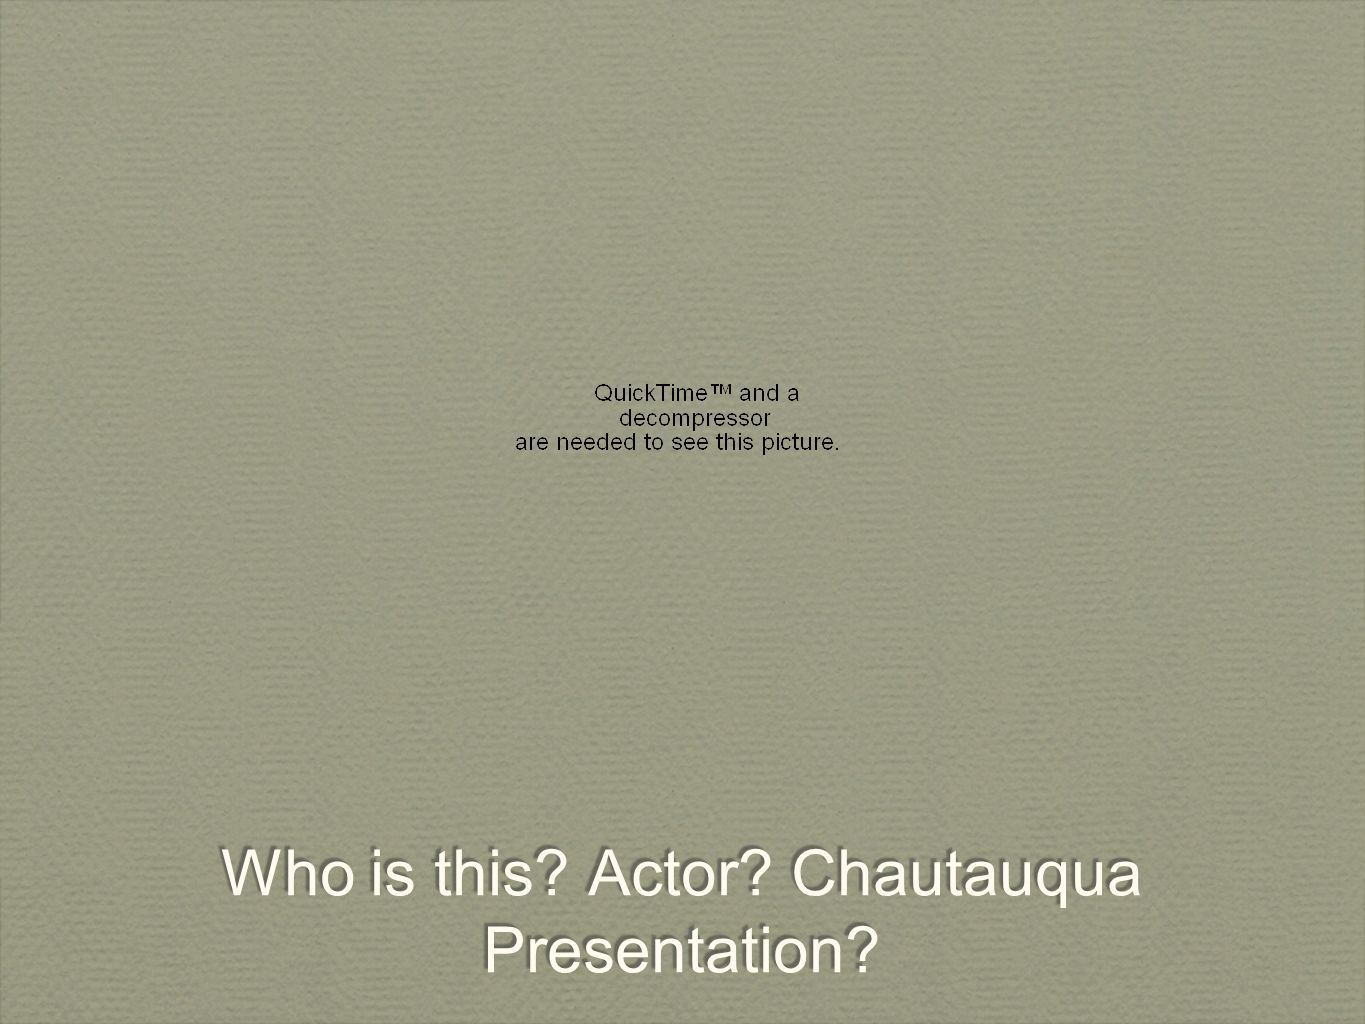 Who is this? Actor? Chautauqua Presentation?